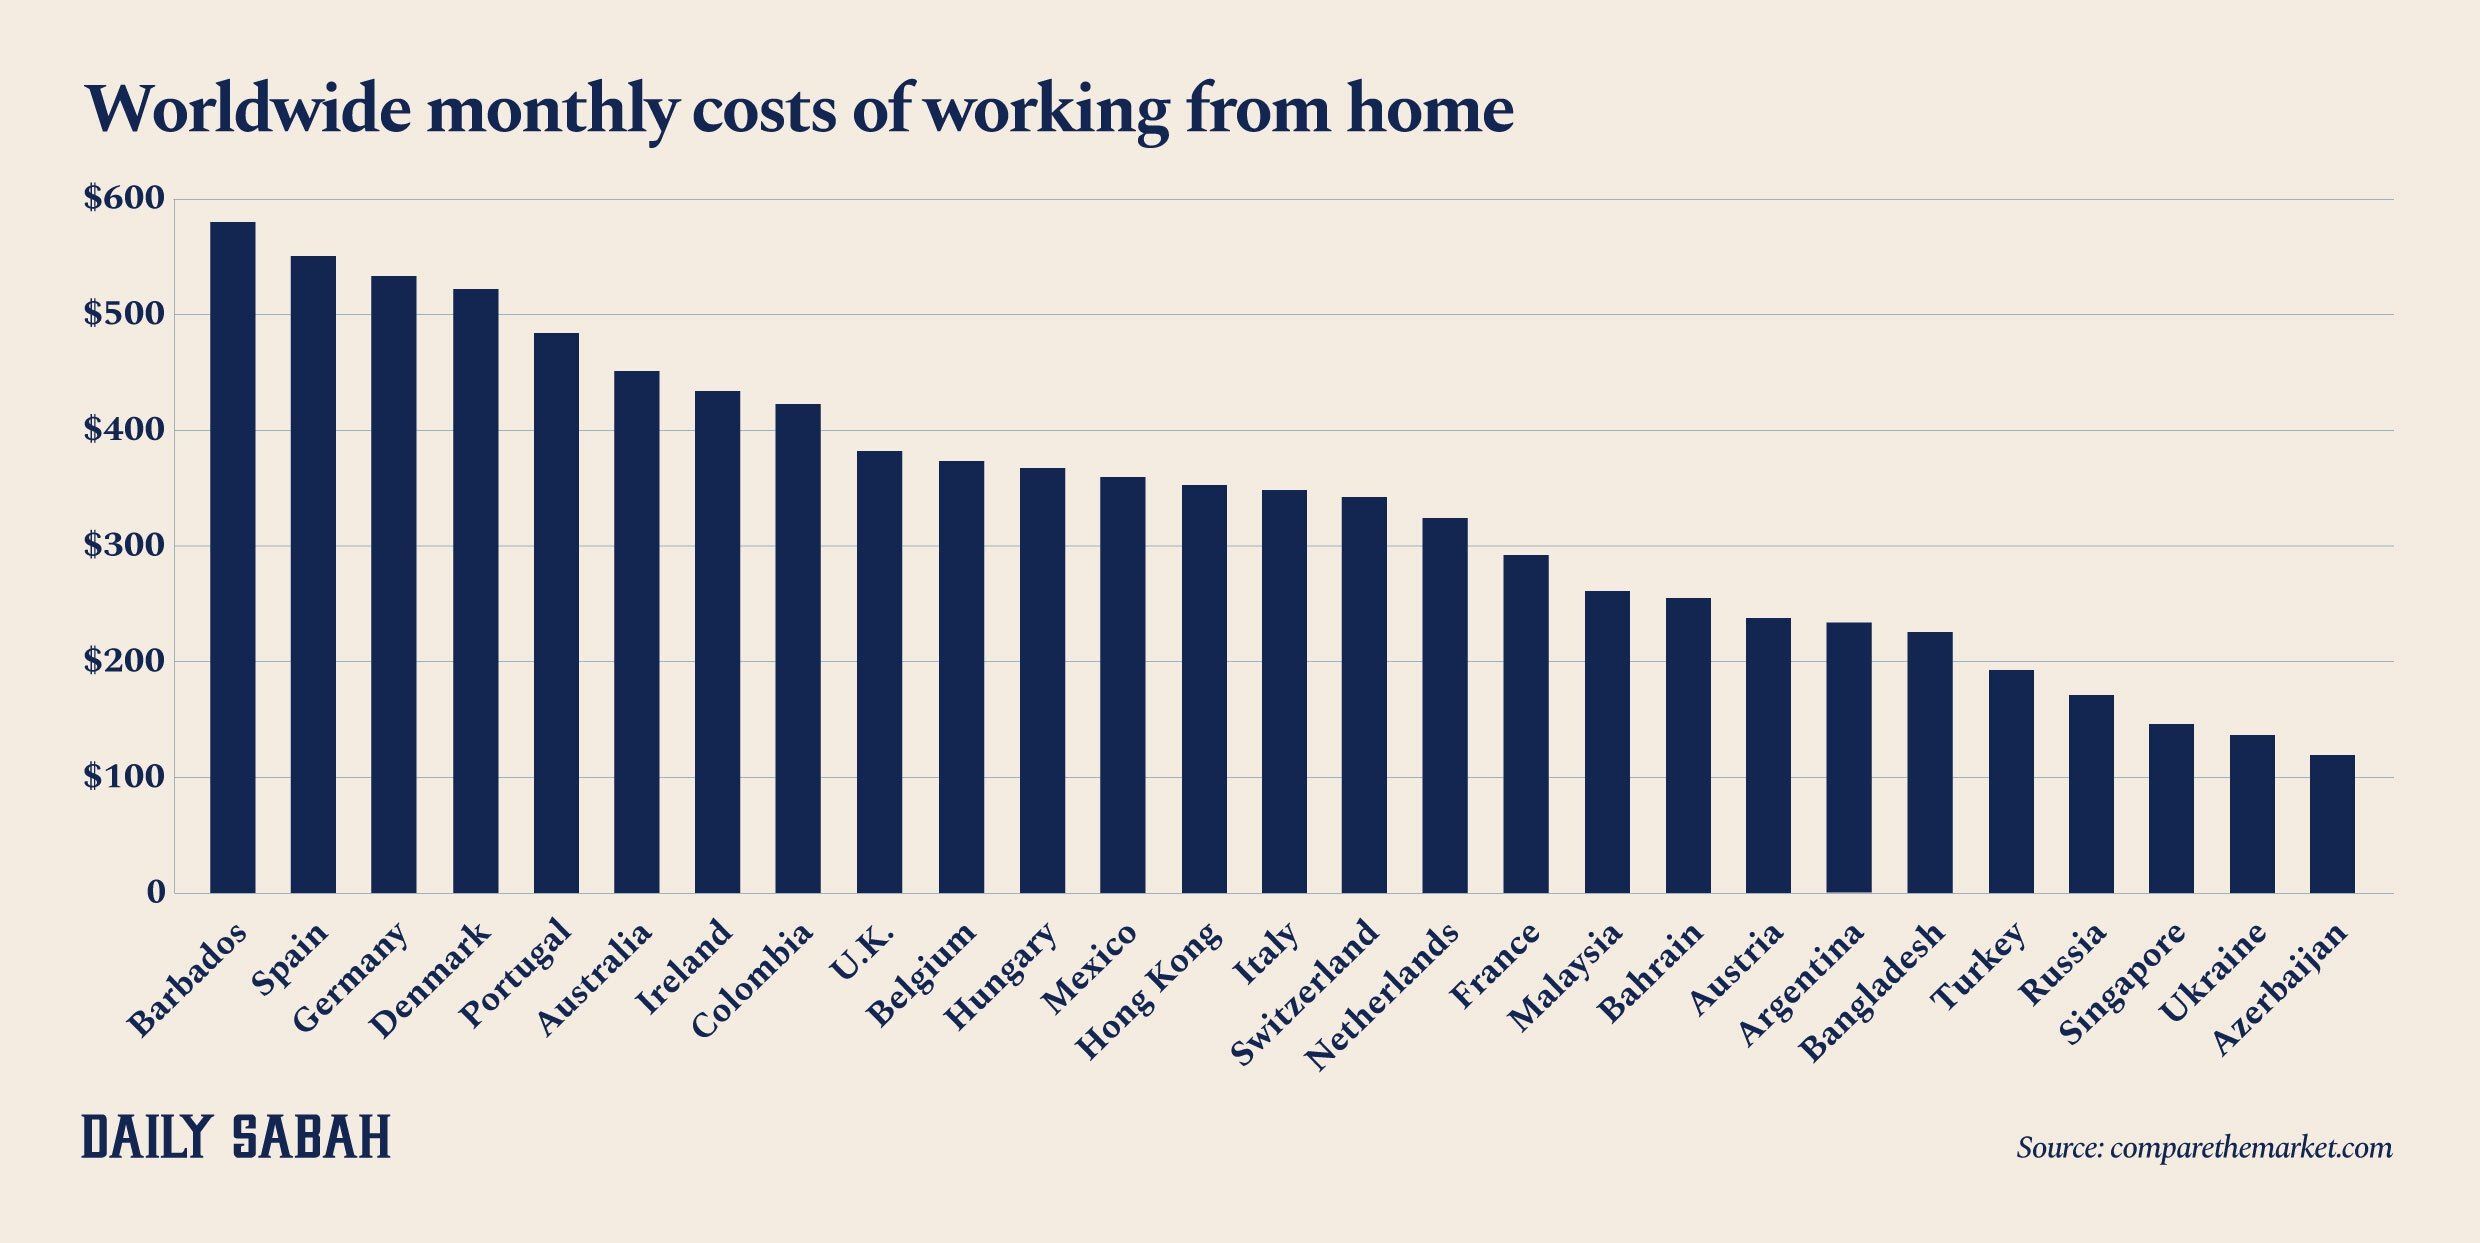 An infographic showing the monthly cost of working from home worldwide.